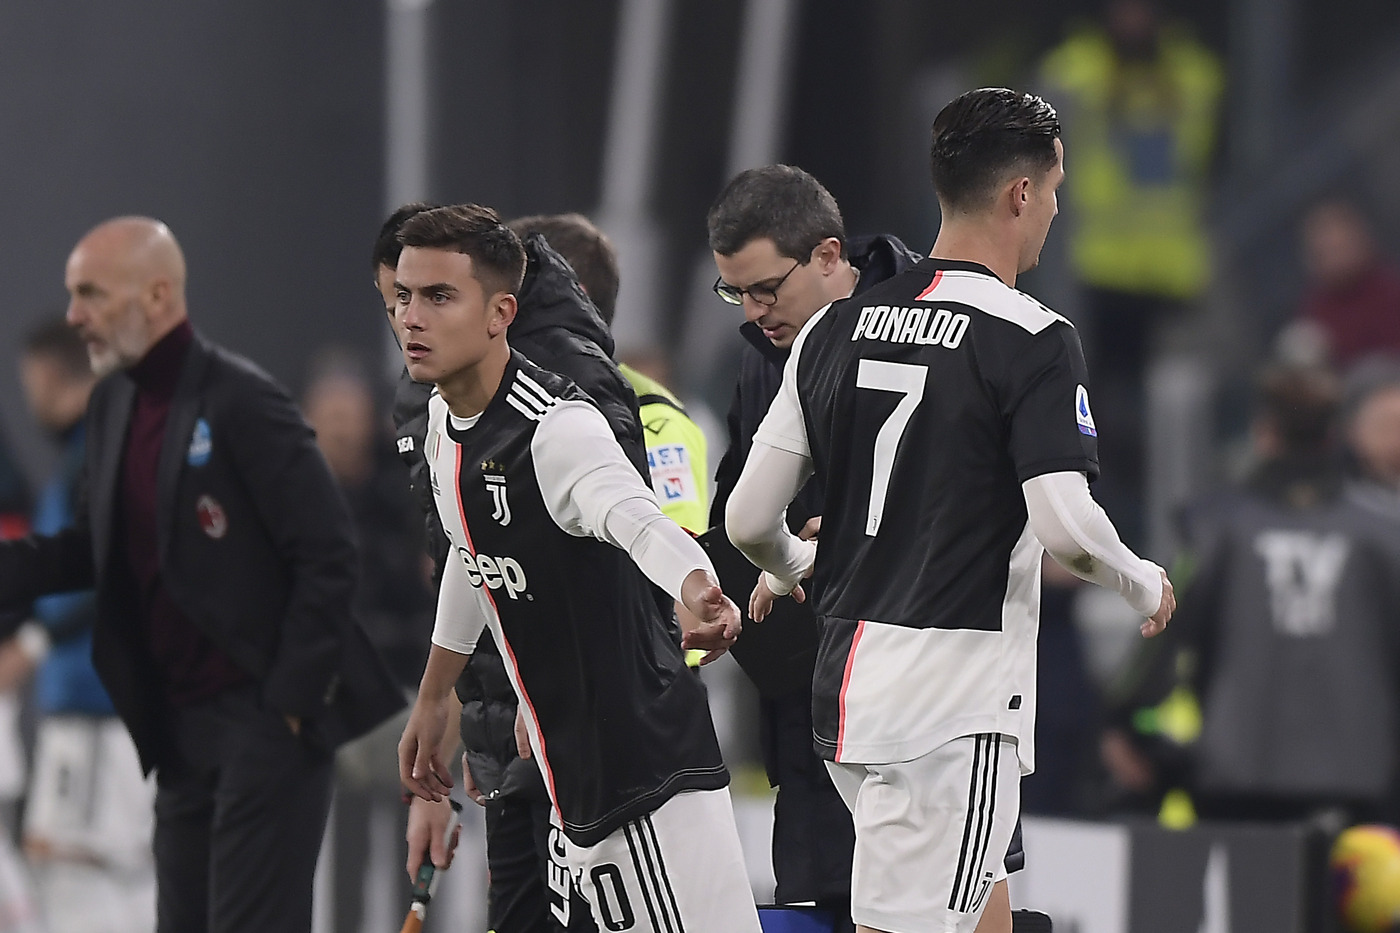 Foto LaPresse - Fabio Ferrari 10 Novembre 2019 Torino, Italia  Sport Calcio ESCLUSIVA TORINO FC Juventus Fc vs AC Milan - Campionato di calcio Serie A TIM 2019/2020 - Allianz Stadium. Nella foto:Cristiano Ronaldo (Juventus F.C.);sostituito con Paulo Dybala (Juventus F.C.)  Photo LaPresse - Fabio Ferrari November 10, 2019 Turin, Italy sport soccer EXCLUSIVE TORINO FC Juventus Fc vs Ac Milan - Italian Football Championship League A TIM 2019/2020 - Allianz Stadium. In the pic:Cristiano Ronaldo (Juventus F.C.); Paulo Dybala (Juventus F.C.)